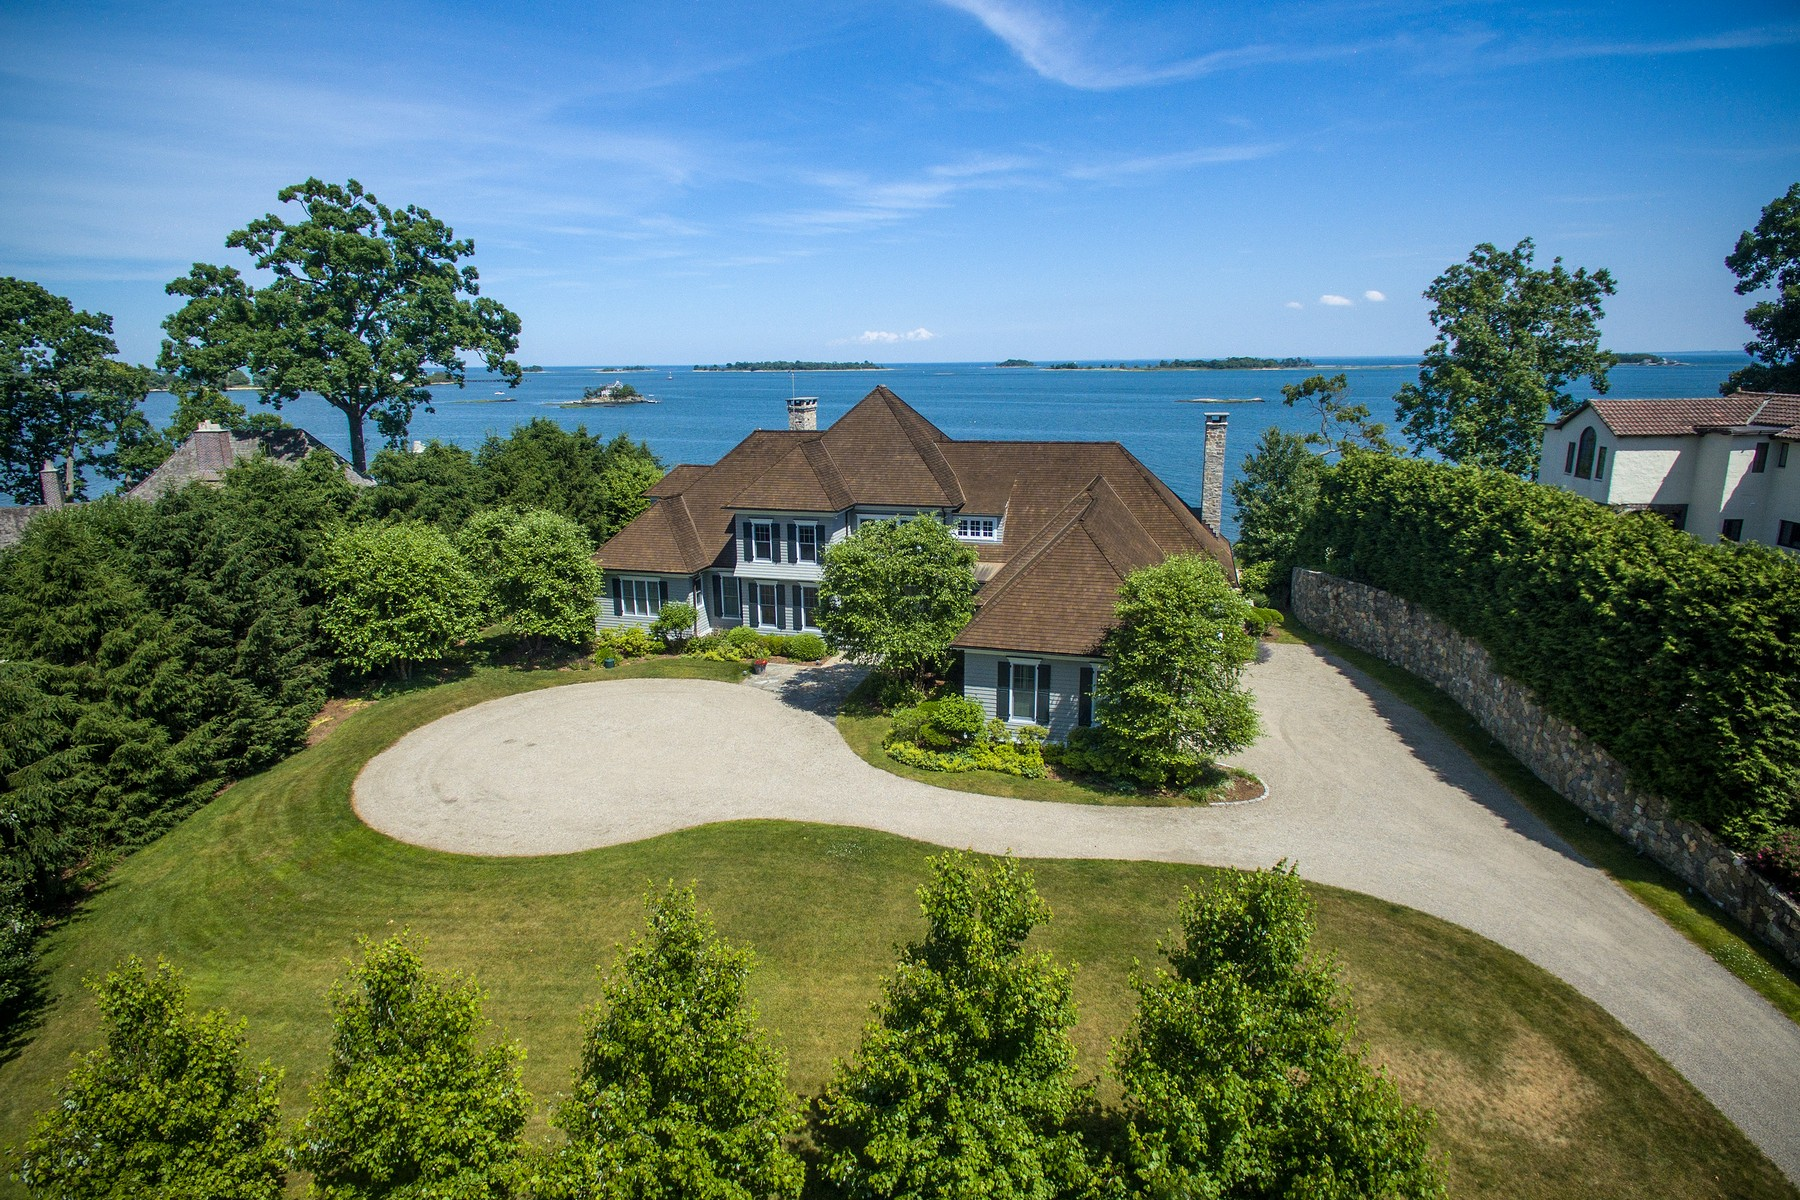 Maison unifamiliale pour l Vente à Wilson Point - Spectacular Waterviews 10 Woodland Road Norwalk, Connecticut, 06854 États-Unis